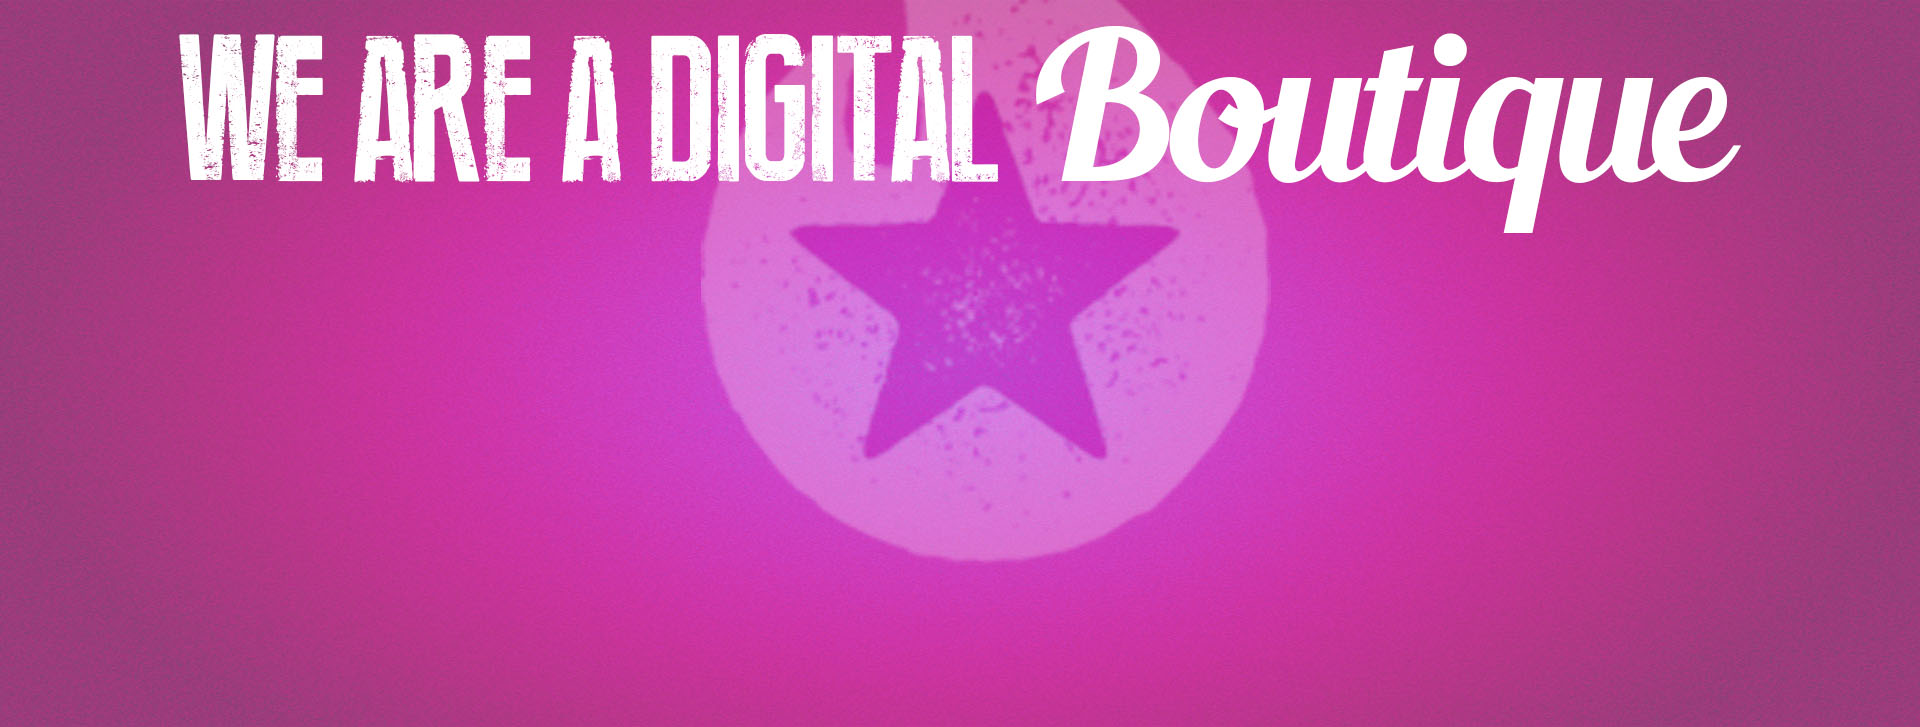 we are digital boutique rosa